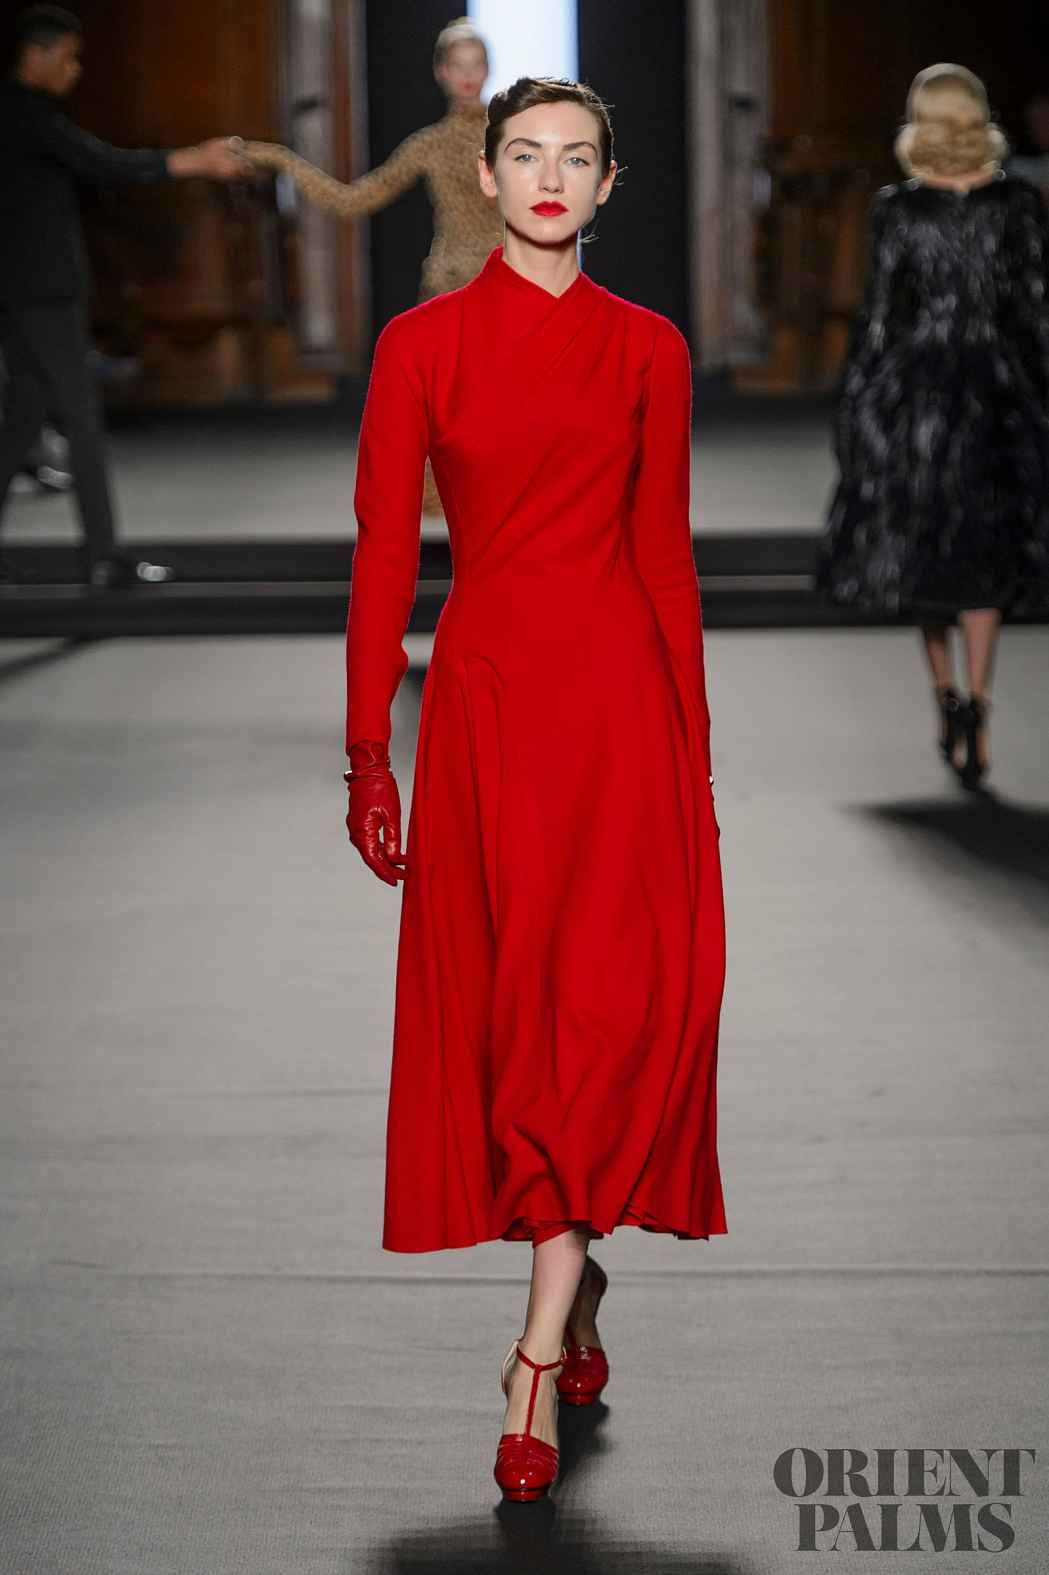 aef117a0261 Julien Fournie Automne-hiver 2018-2019 - Haute couture, 2019 | red ...